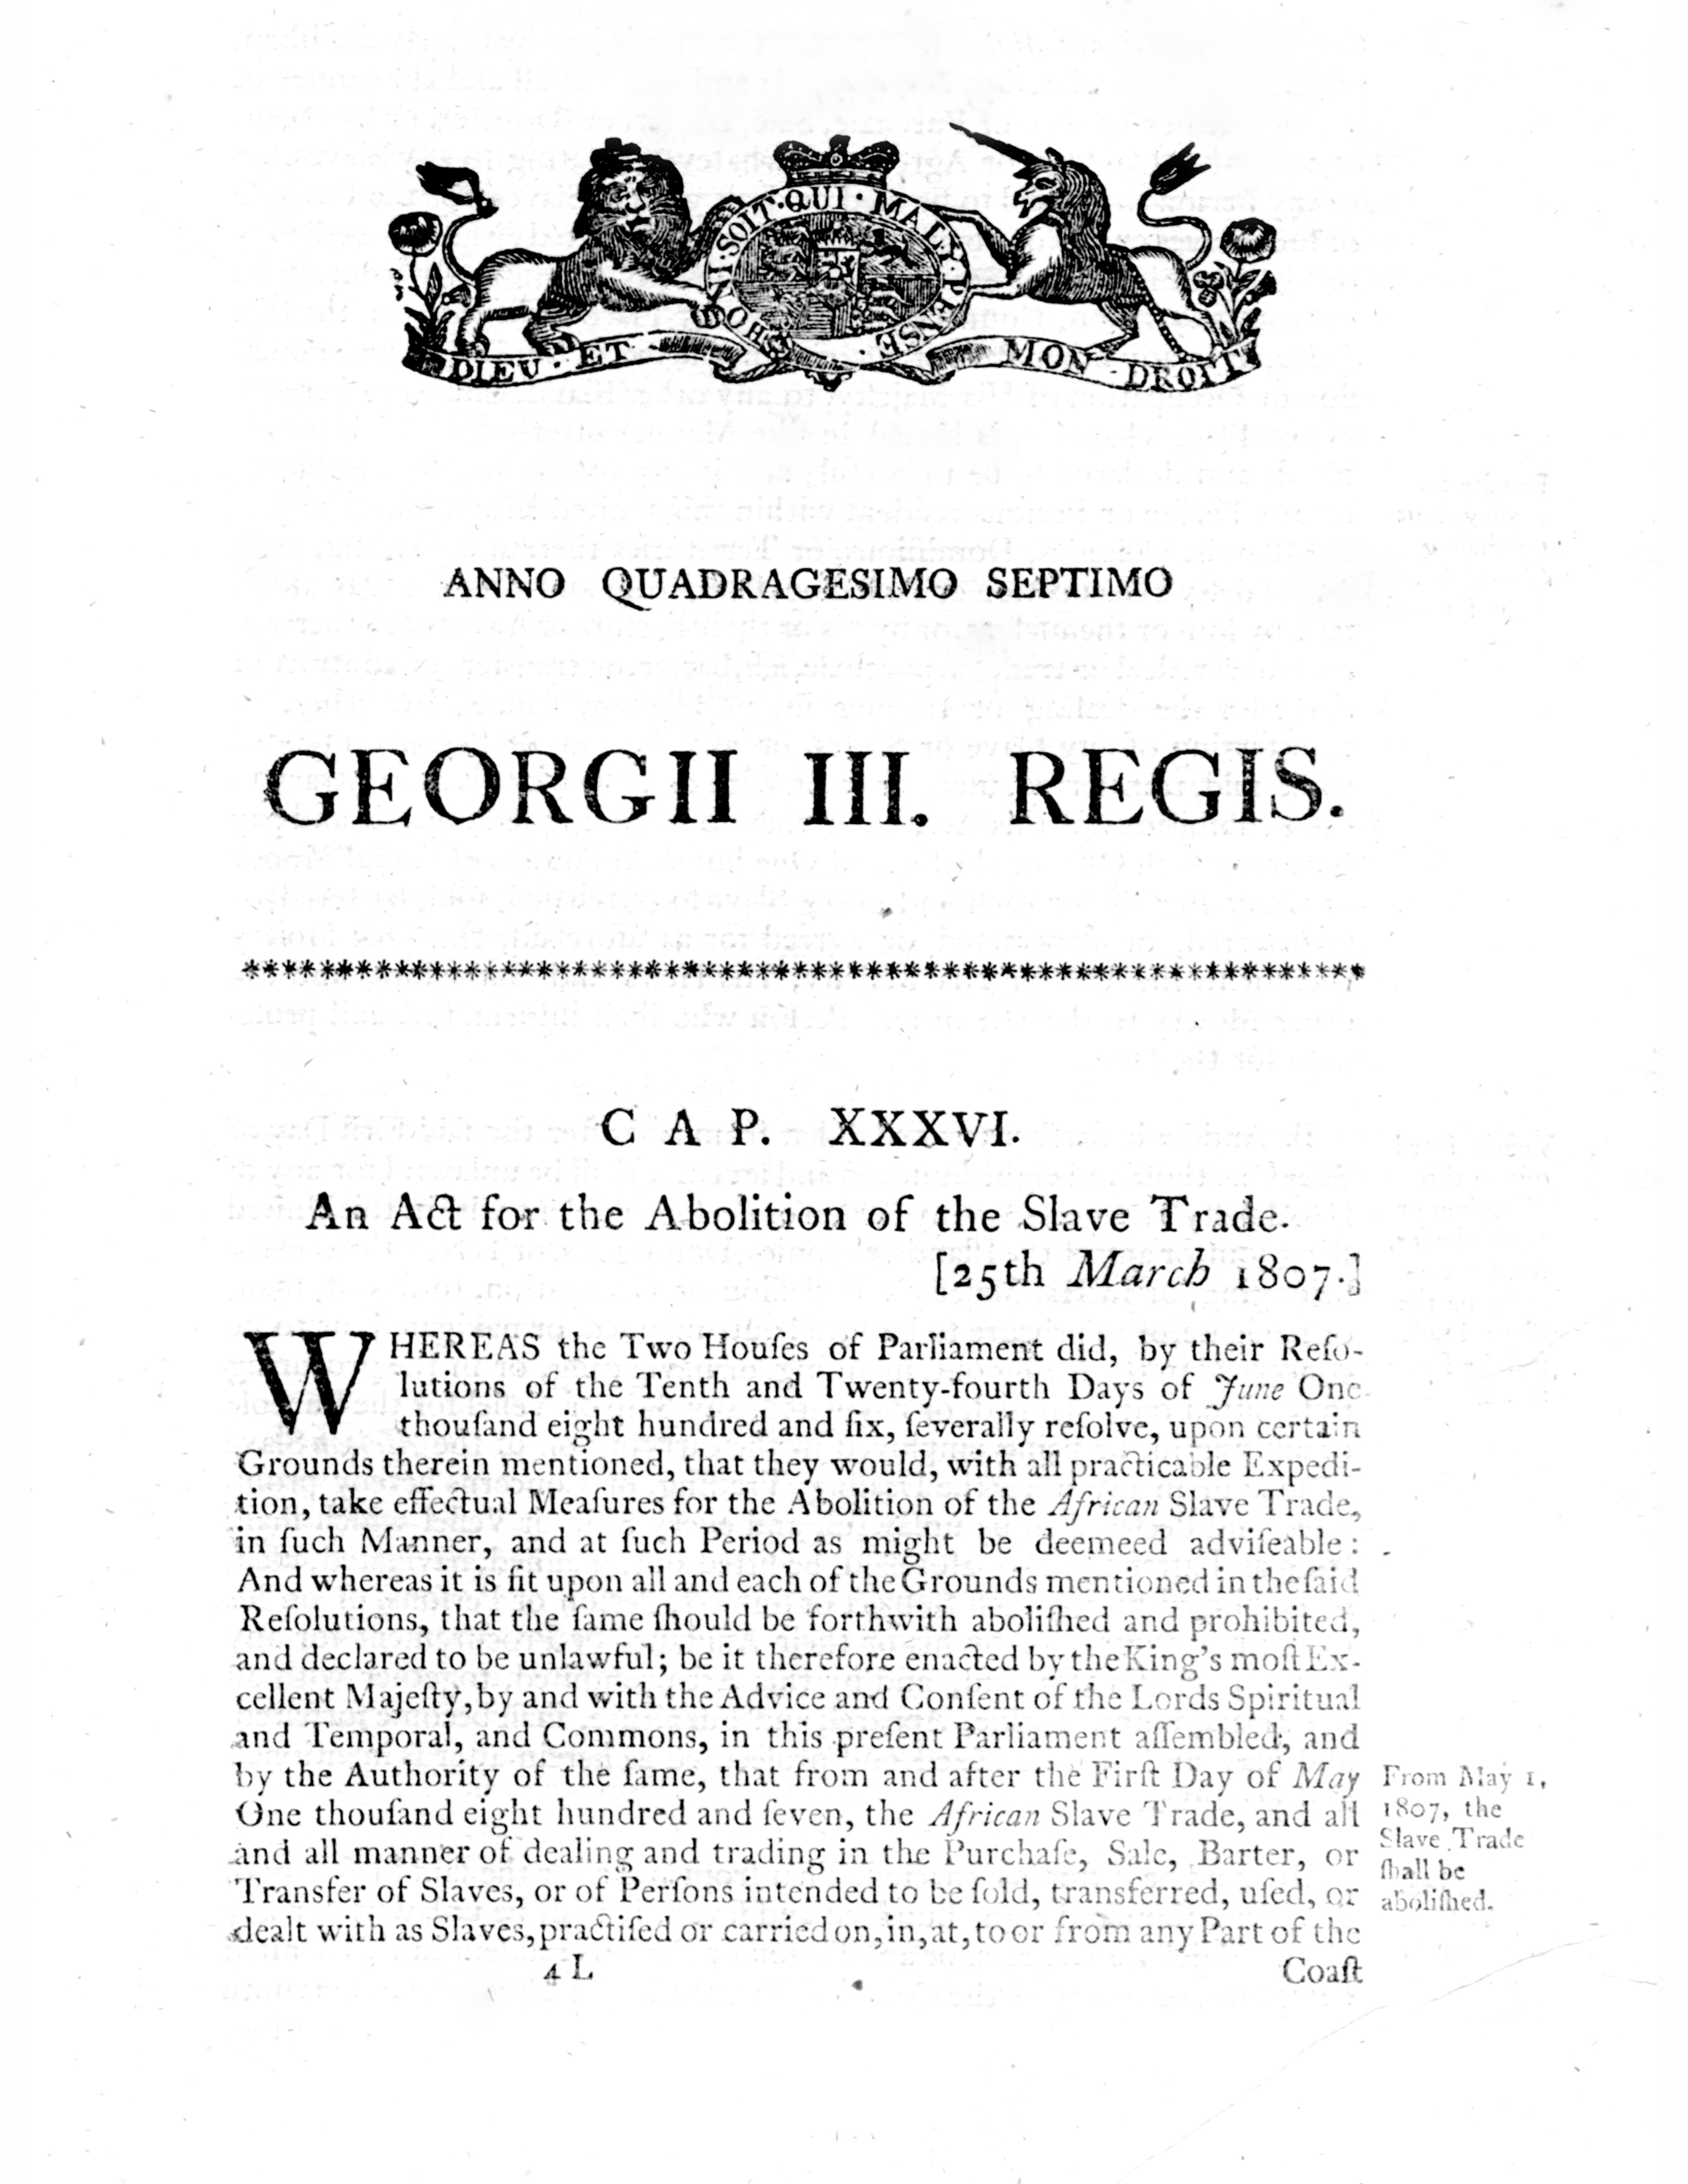 Parliament (George III) An Act for the Abolition of the Slave Trade, 25 March 1807